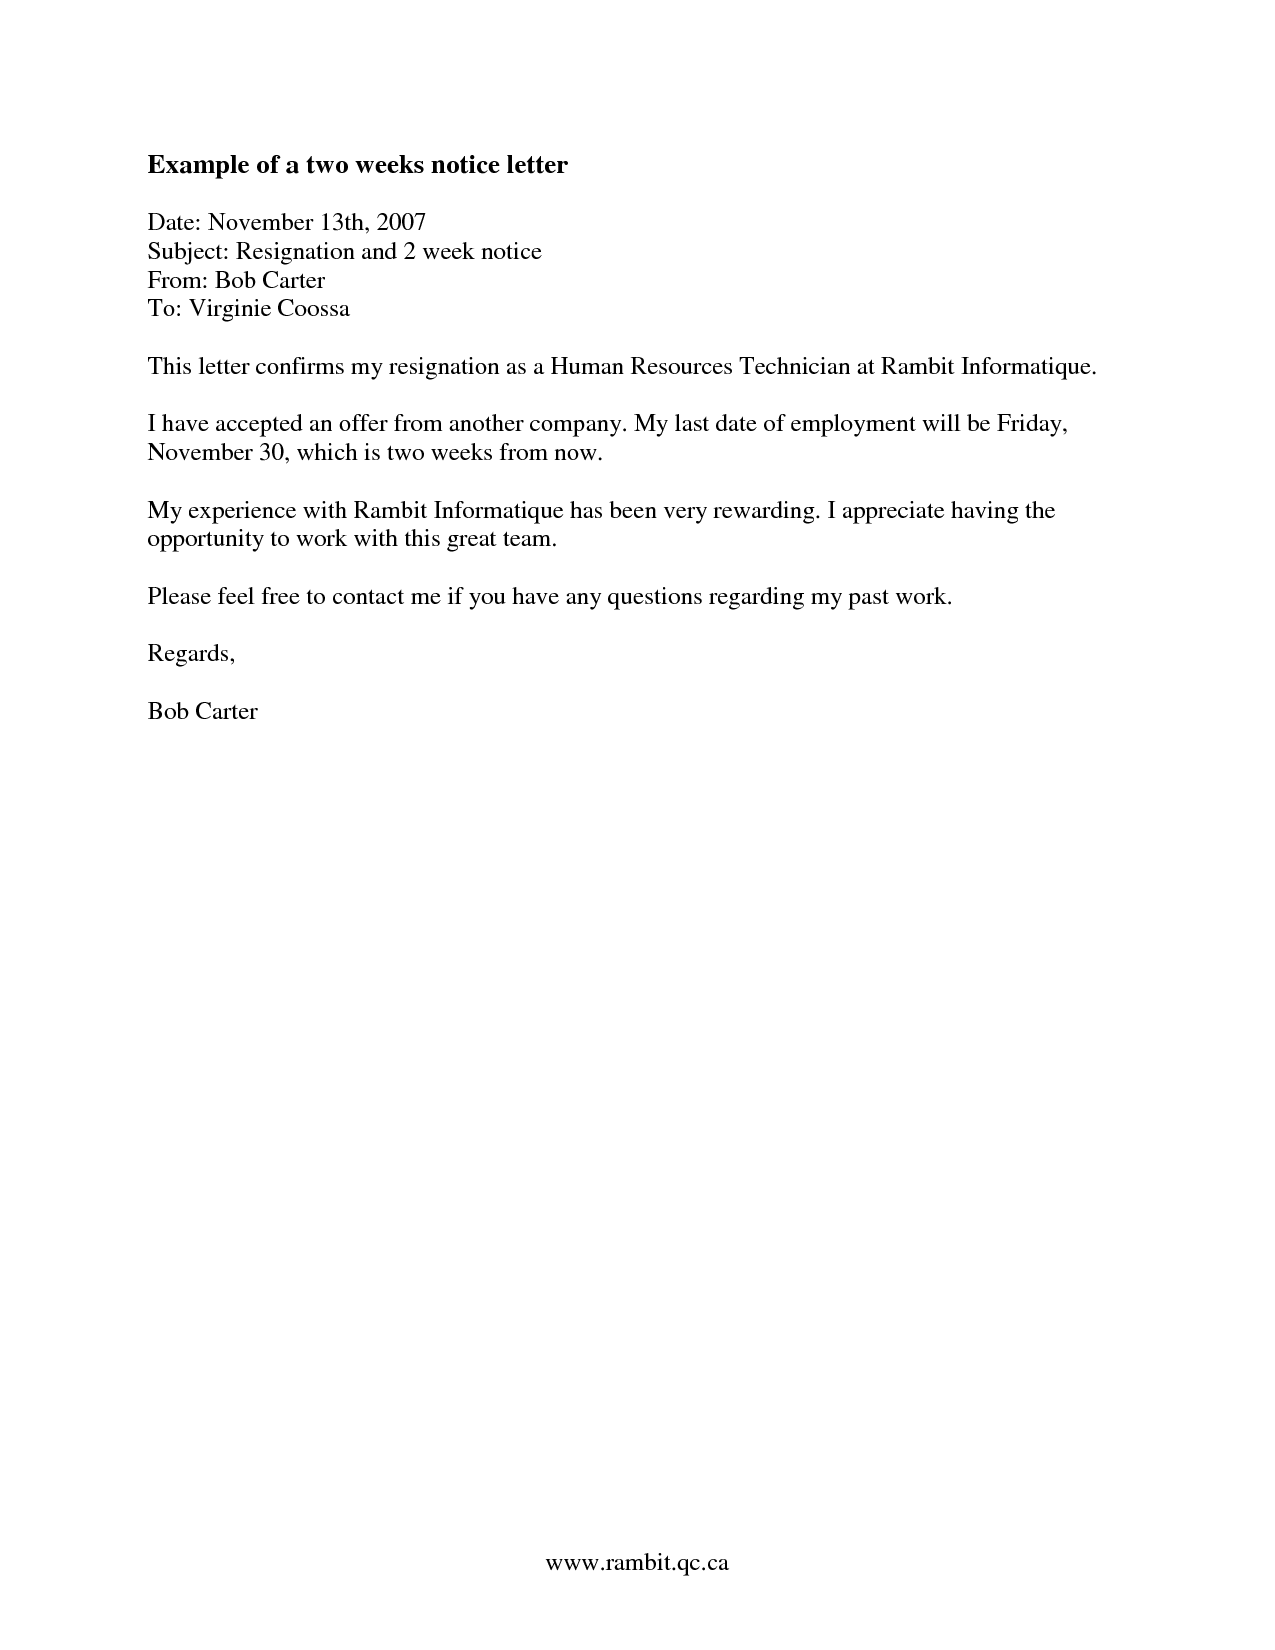 2 weeks notice letter resignation letter week notice wordswriting a letter of resignation email letter sample